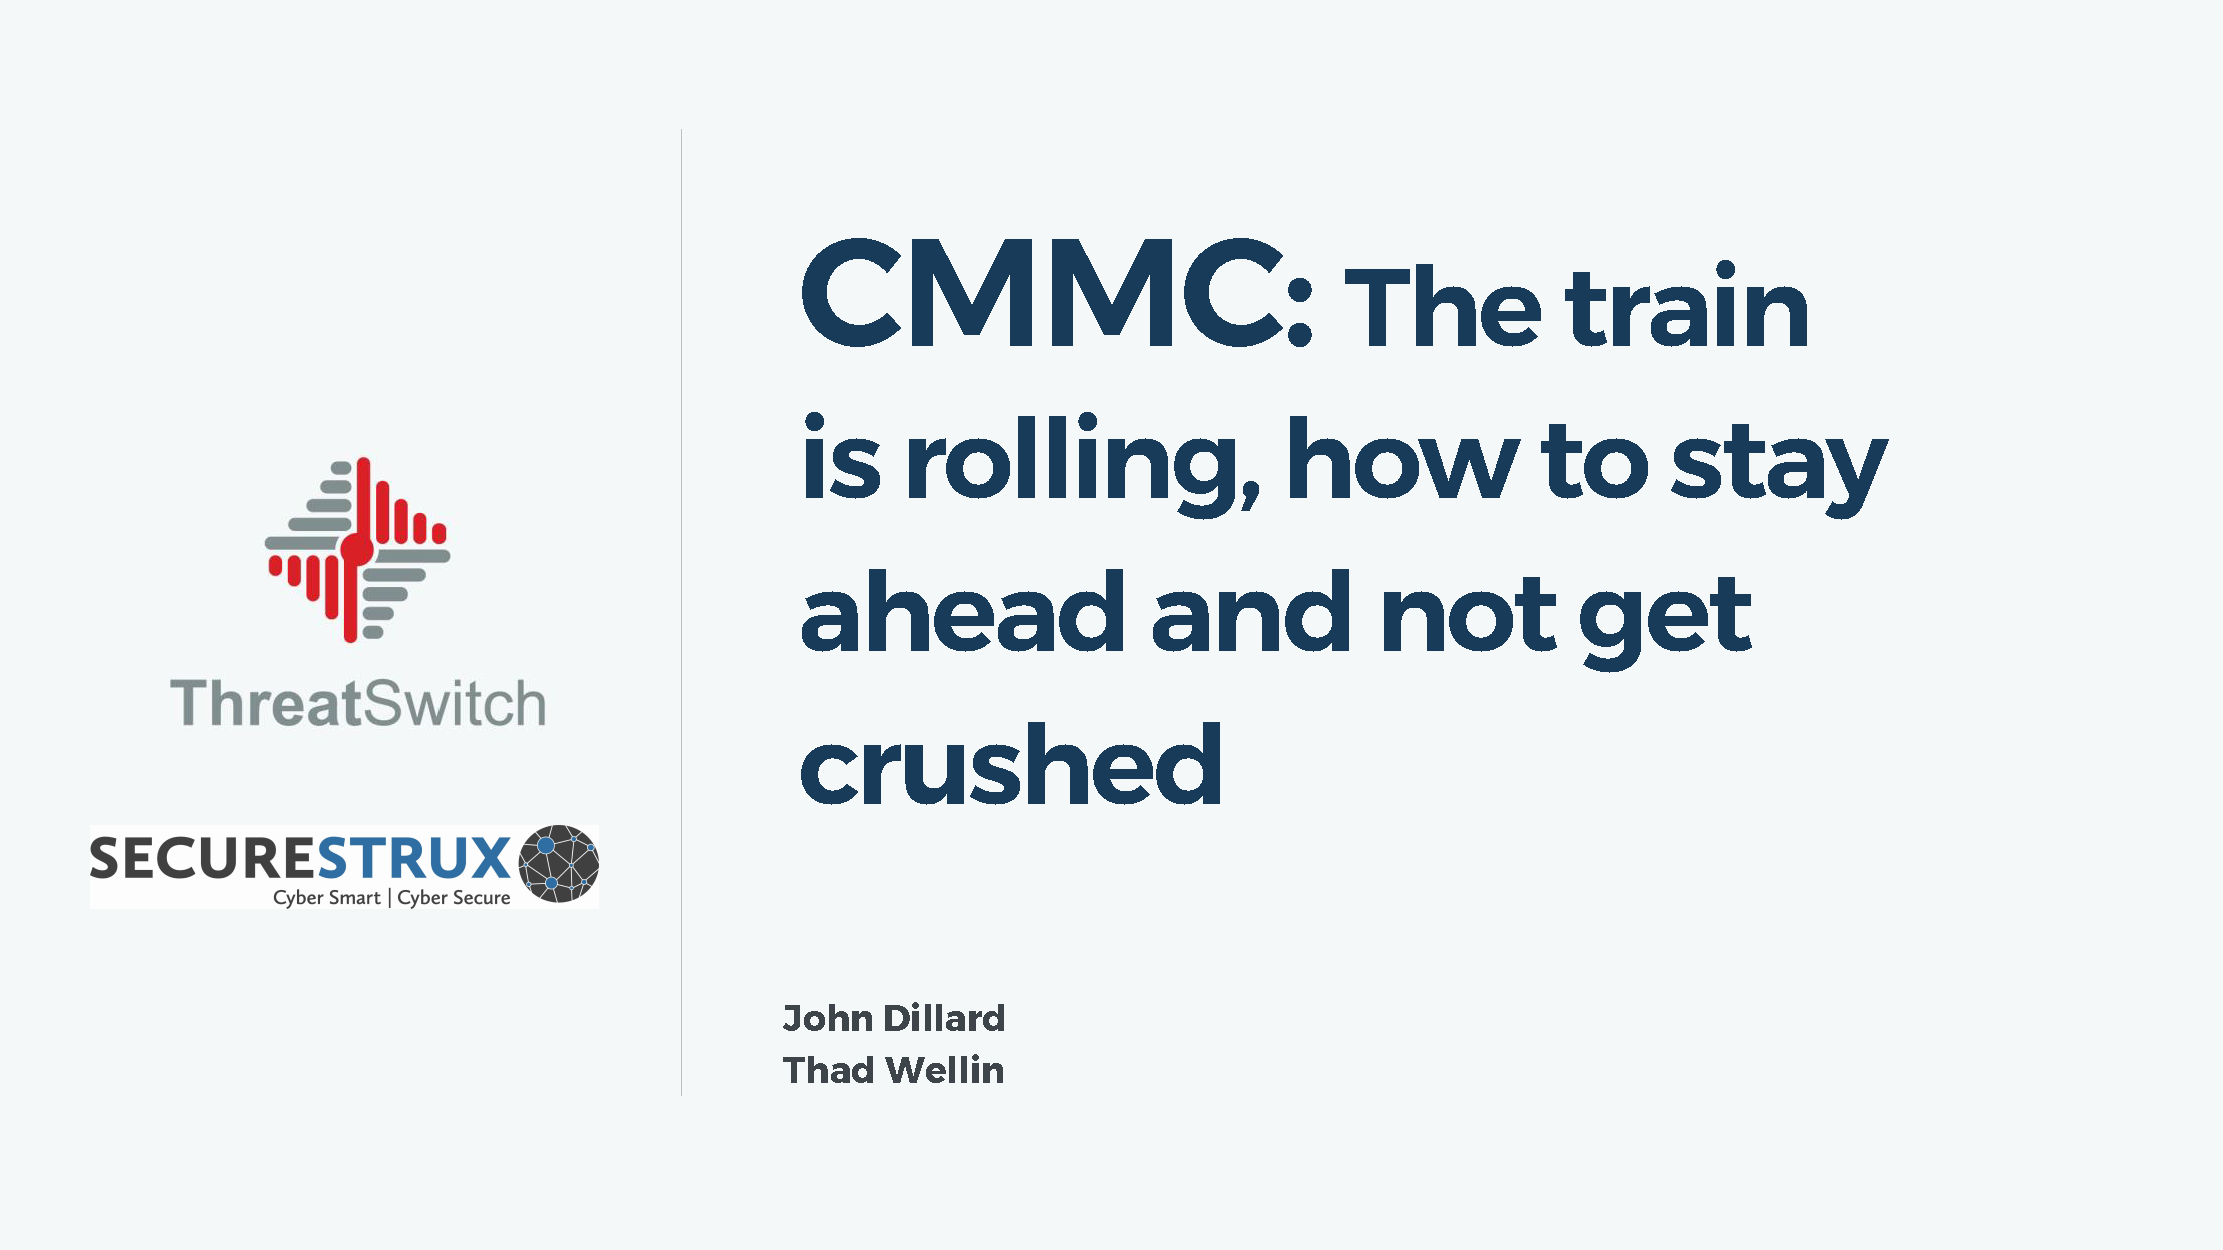 CMMC: The train is rolling. How to stay ahead and not get crushed.